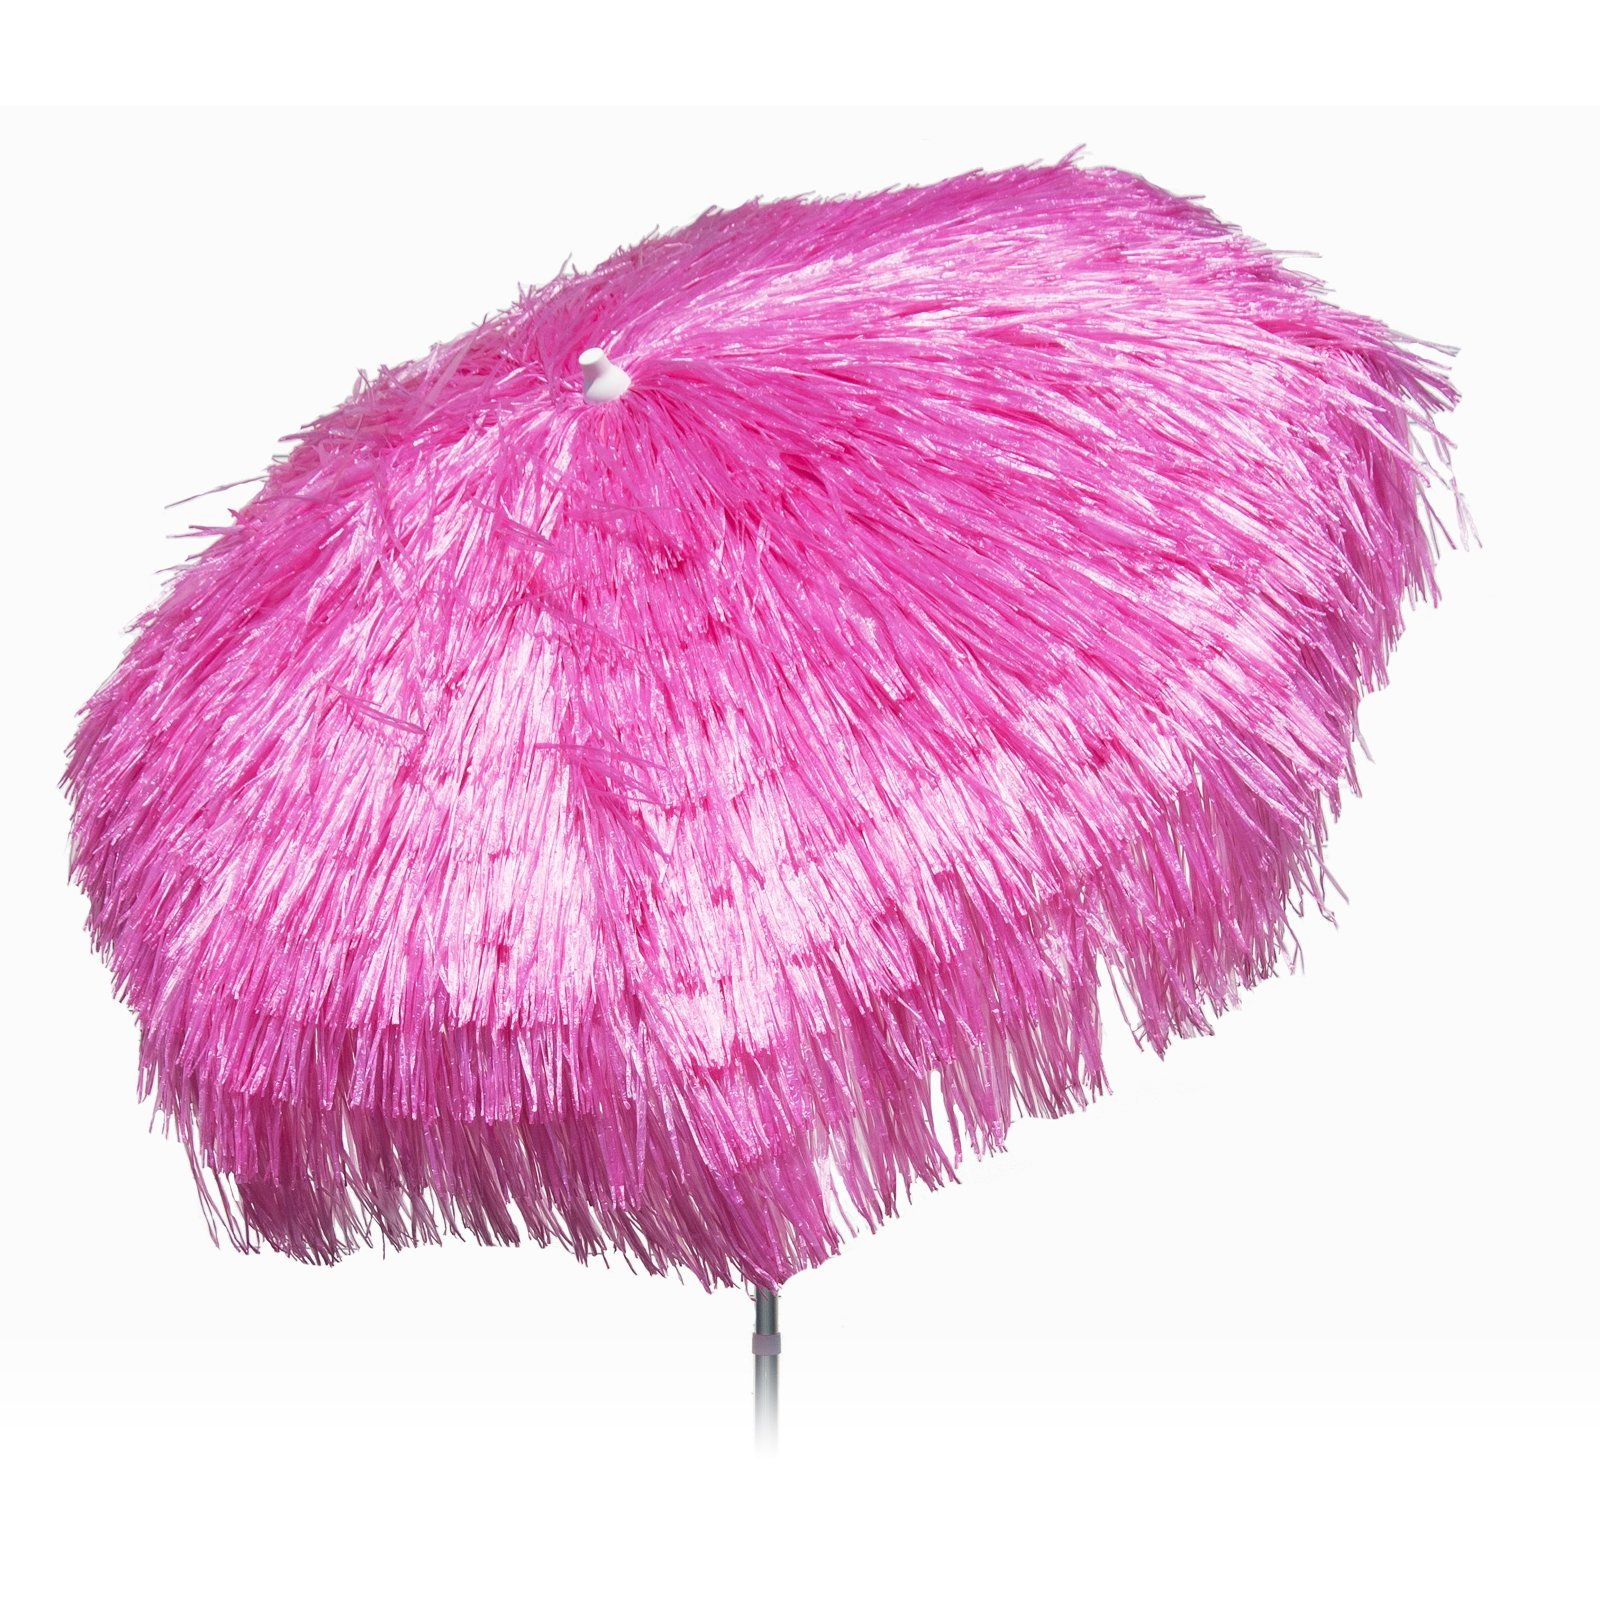 Palapa Tiki Fuchsia Push/Tilt Umbrella 6 foot - Patio Pole